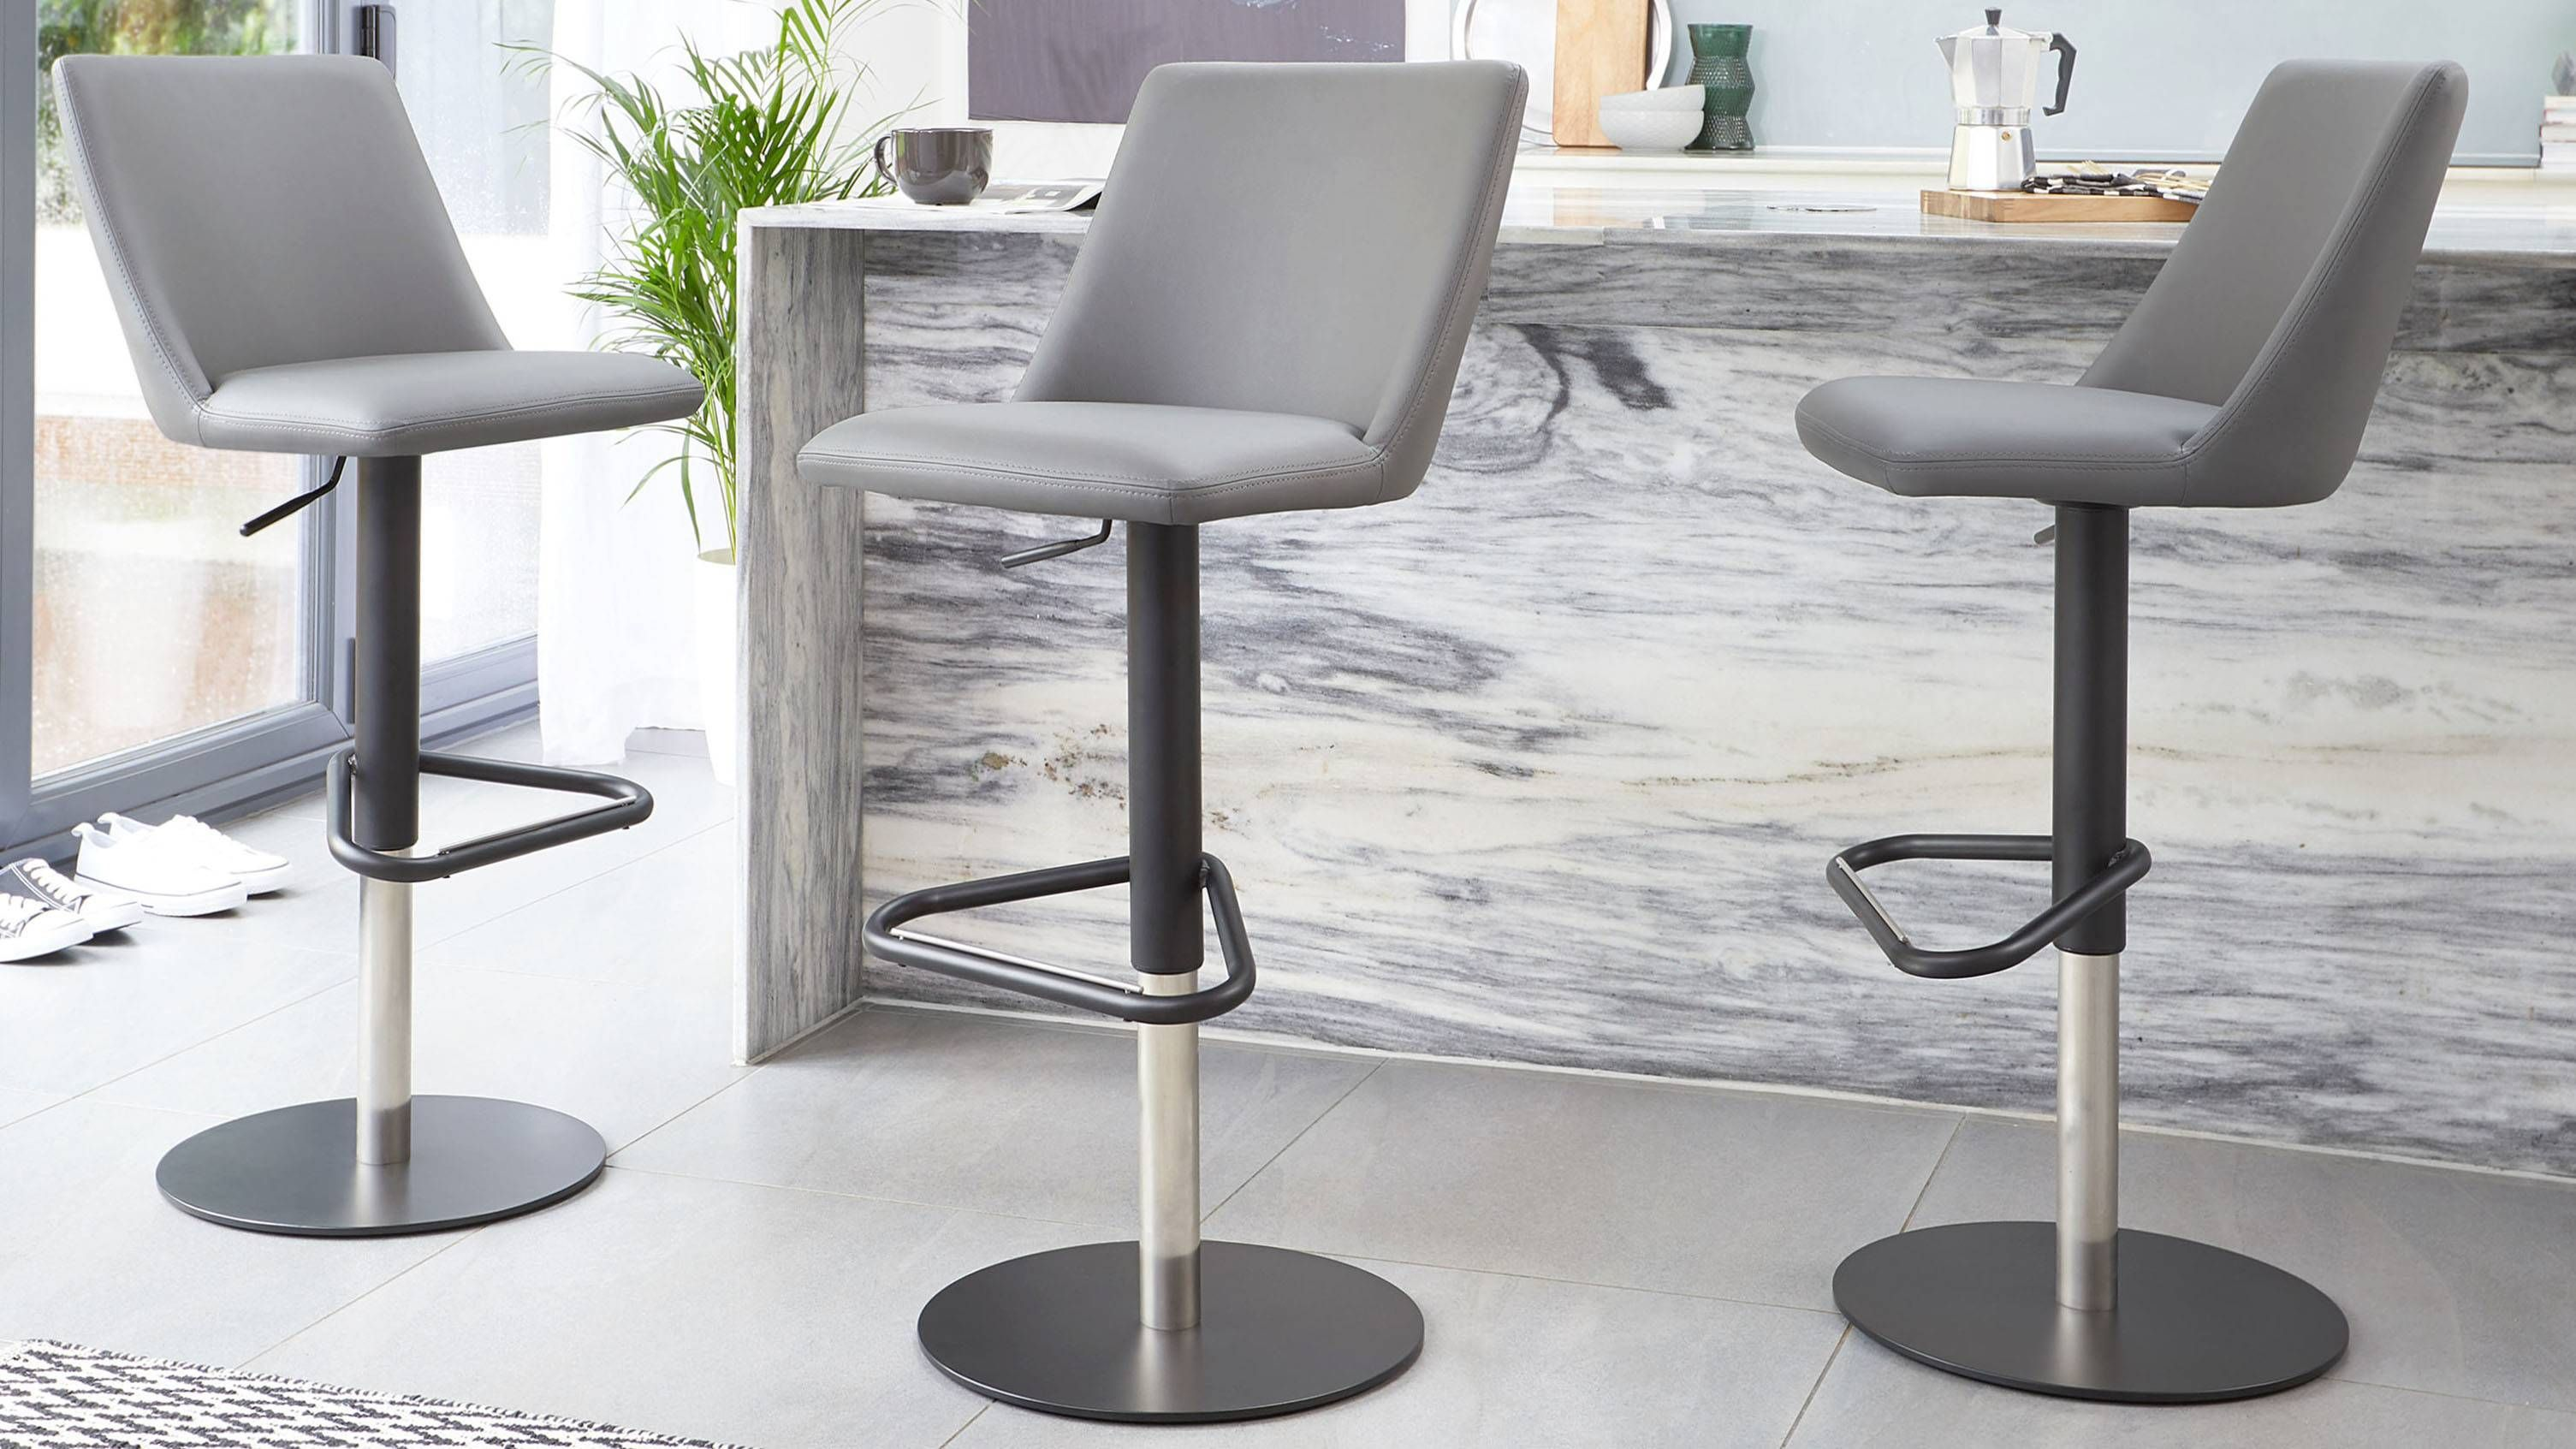 Dante Matt Black Gas Lift Bar Stool Contemporary Bar Stools